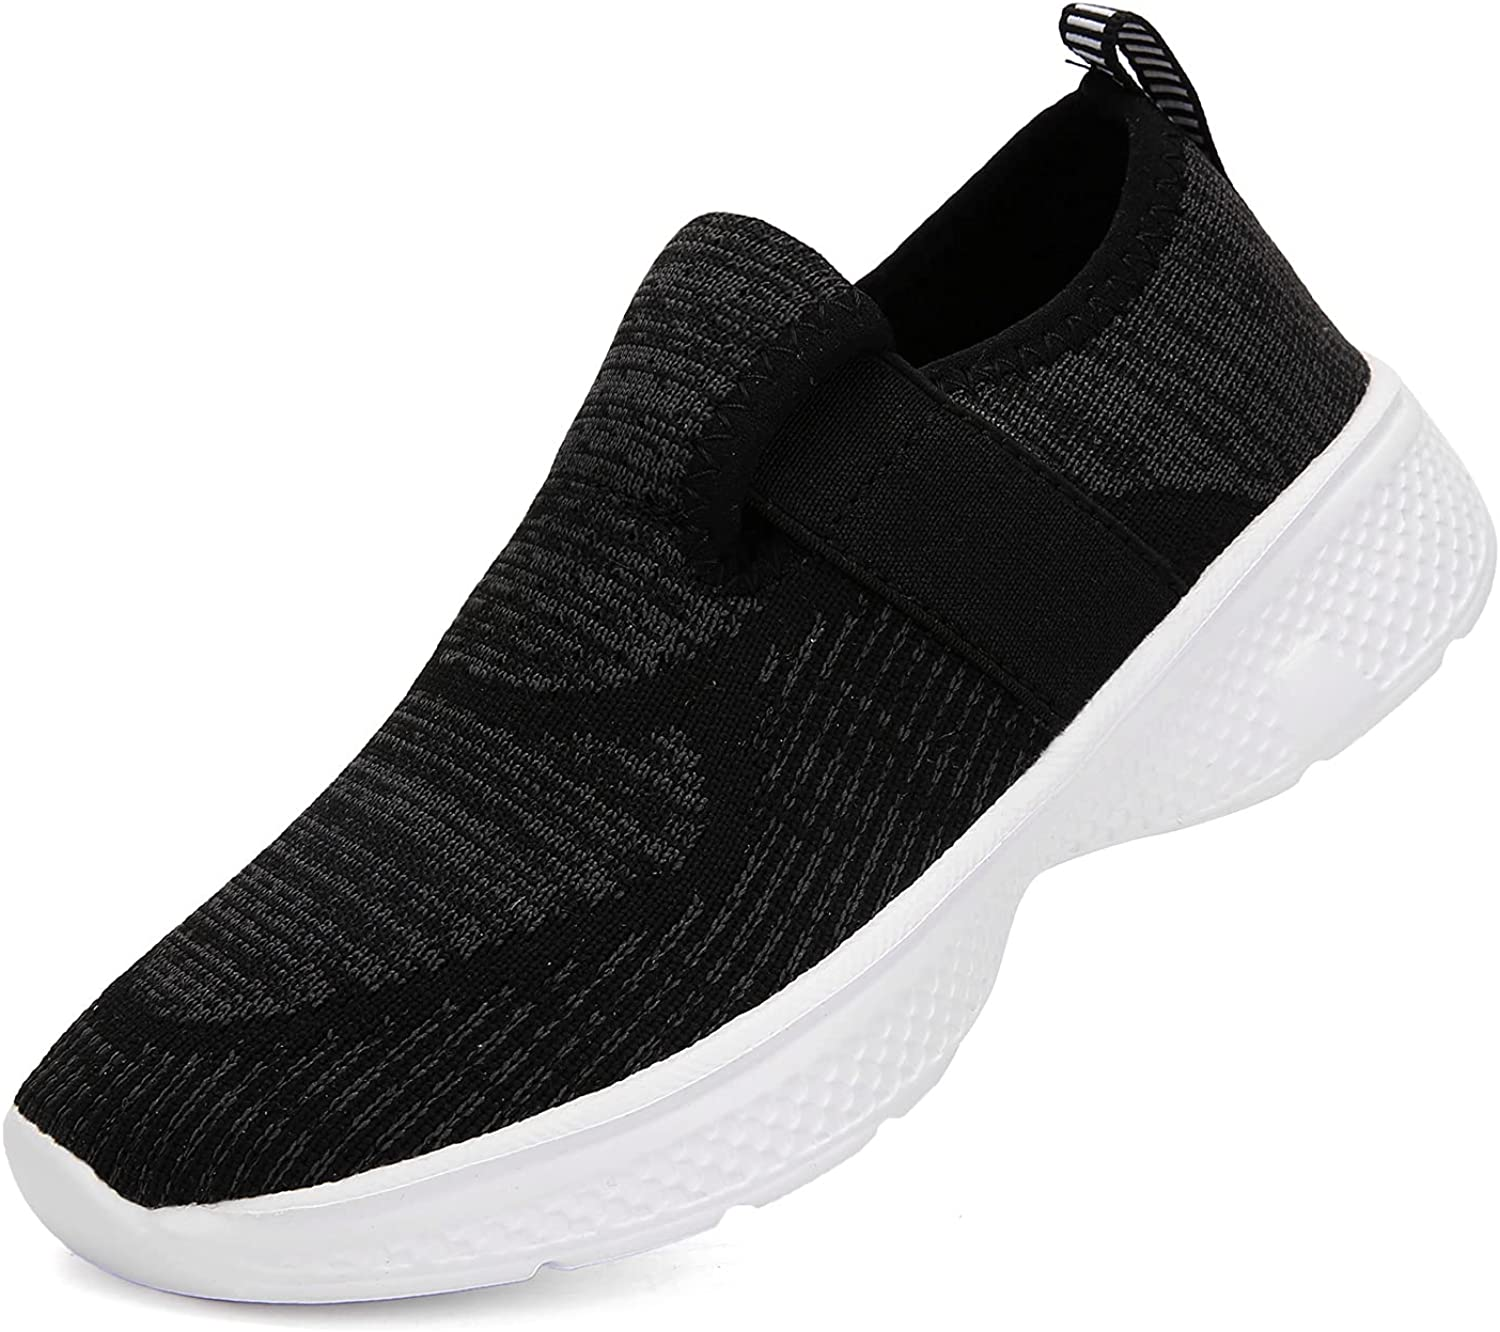 Yapoly Kids Shoes Breathable for L - Toddler Limited time trial price Long Beach Mall Girls-Boys Sneakers